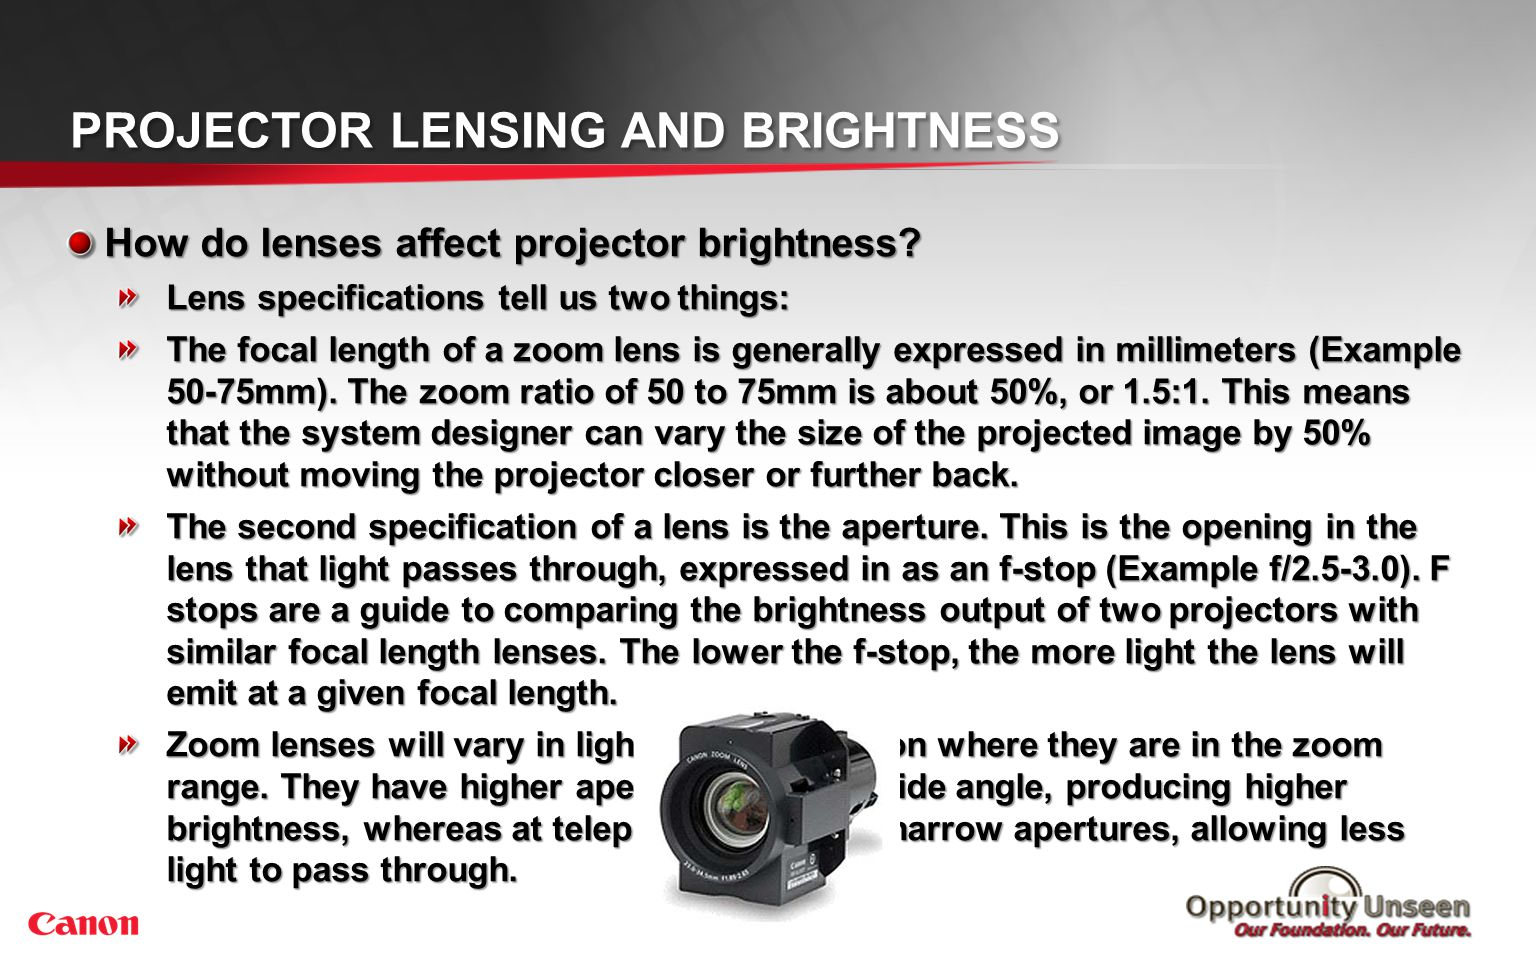 Canon Lens Advantages 1.72m 4.7m to 8m 0.8 : 1 2.2 : 1〜3.75 : 1 2.0